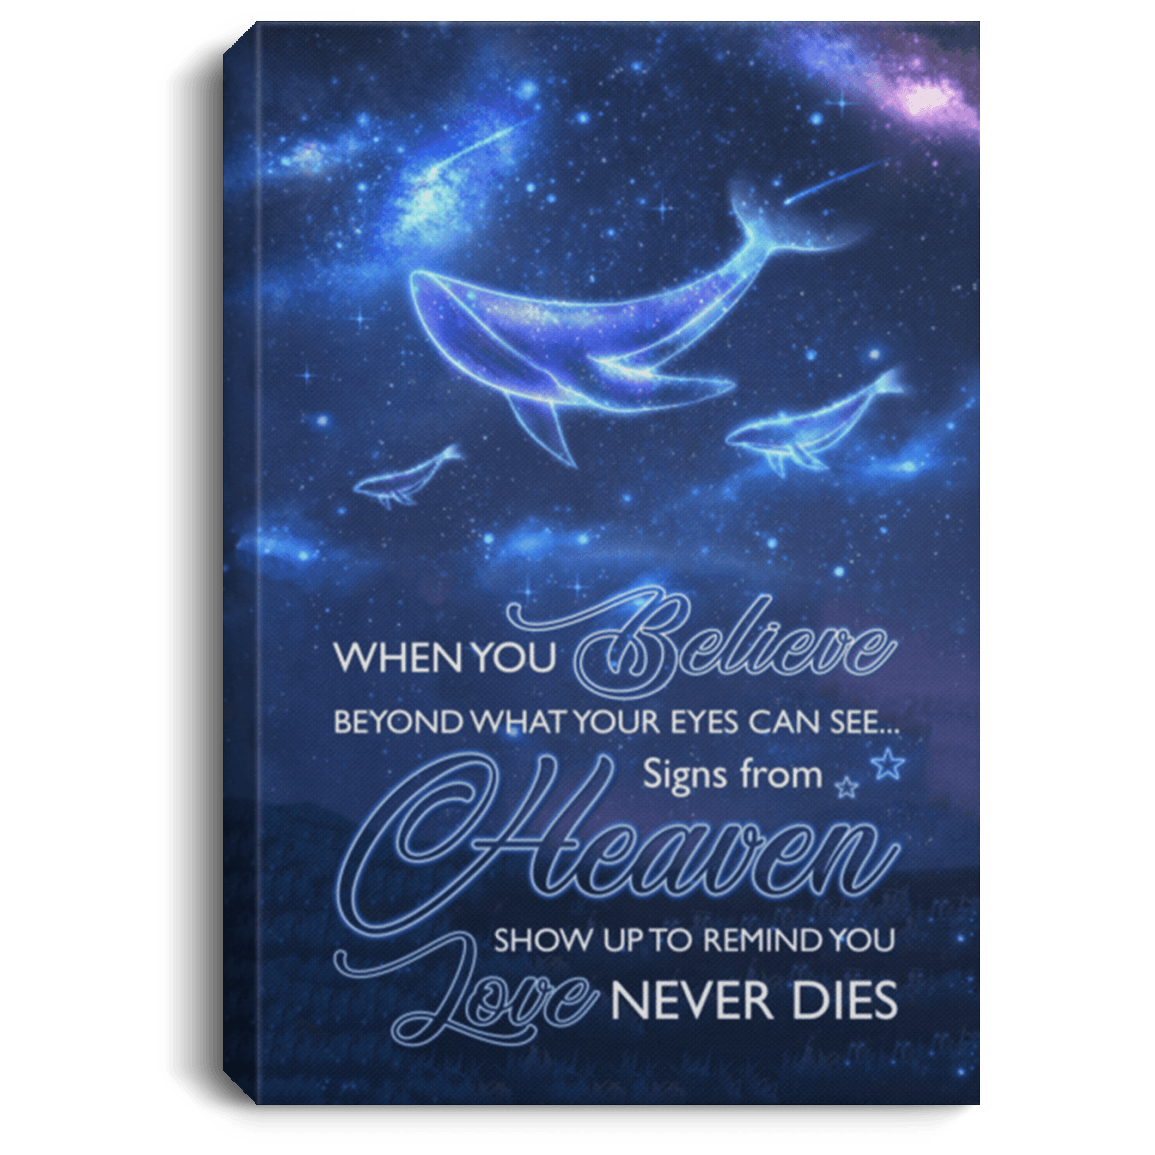 Believe Beyond What Your Eyes Can See Signs From Heaven Show Up To Remind  You Love Never Dies Framed Canvas-Unframed Poster